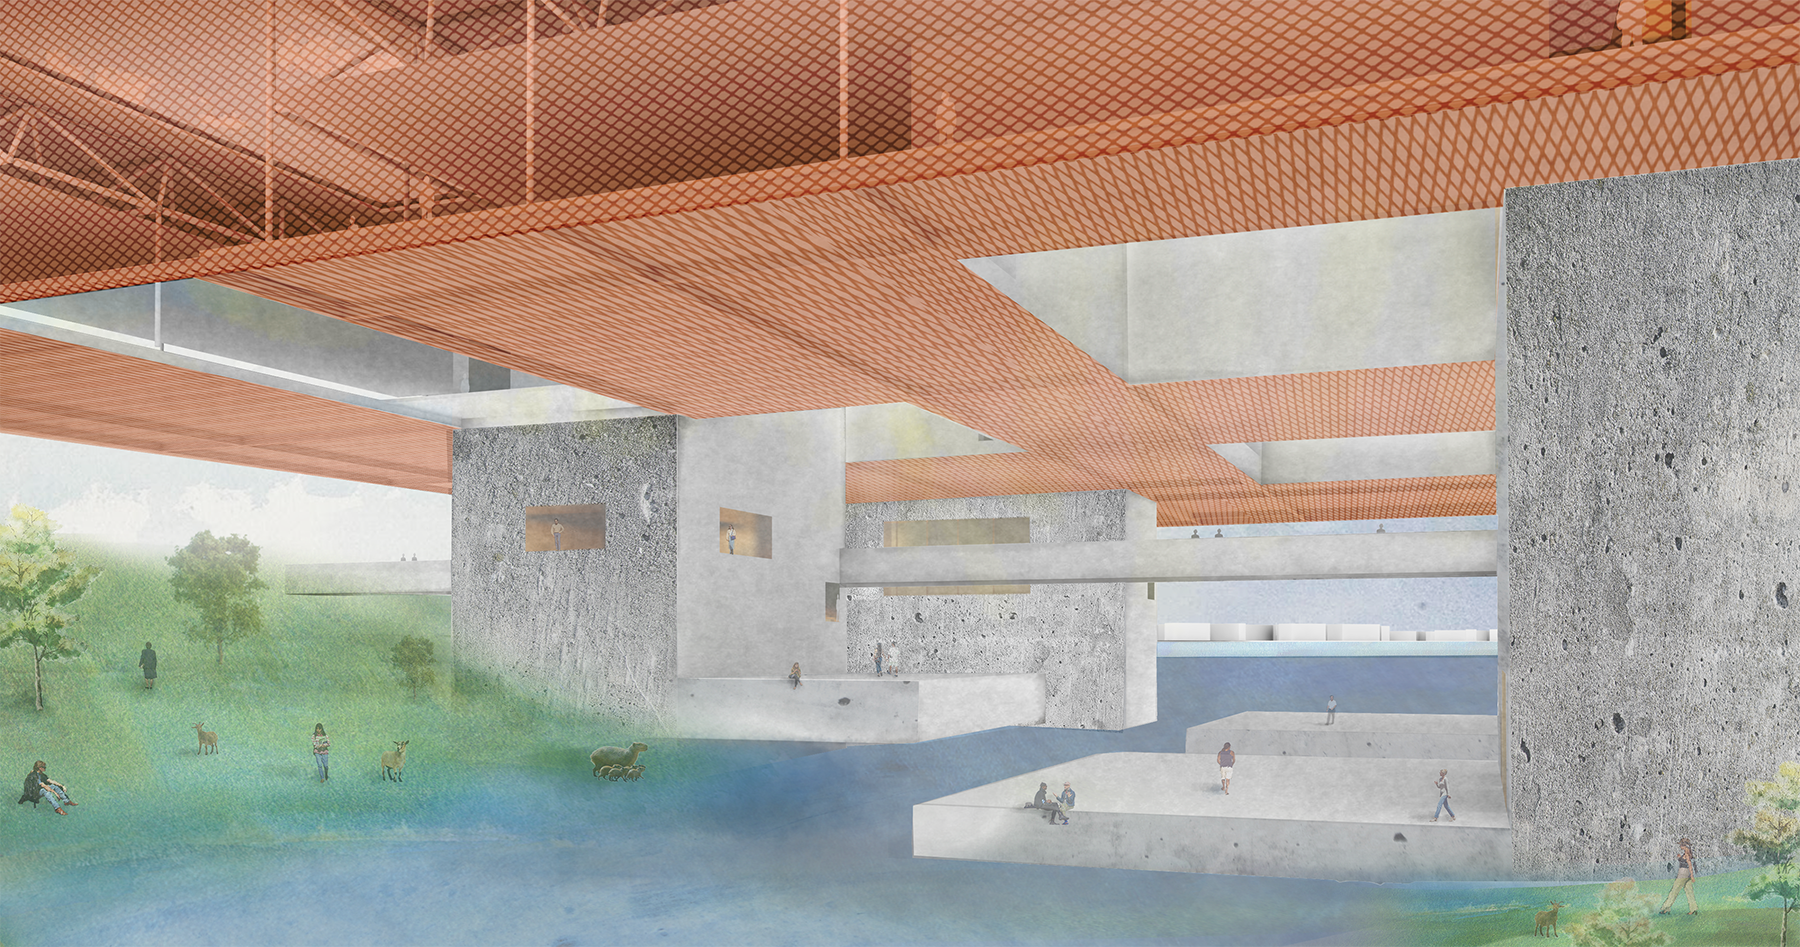 CHANGE MADE VISIBLE   While functioning in the urban context as a bridge between the two sides of the river the building is also is a means to engage the wetland habitat at the South side of the Island. The spaces carved into the Science Platform's building cores provides both permanent and temporal access to the river with submersible terraces located in the restorative wetland habitat. Researchers and the public can access and use the wetland and terraces for exhibits, experiments, and demonstrations while making the changes in the river water level visible.